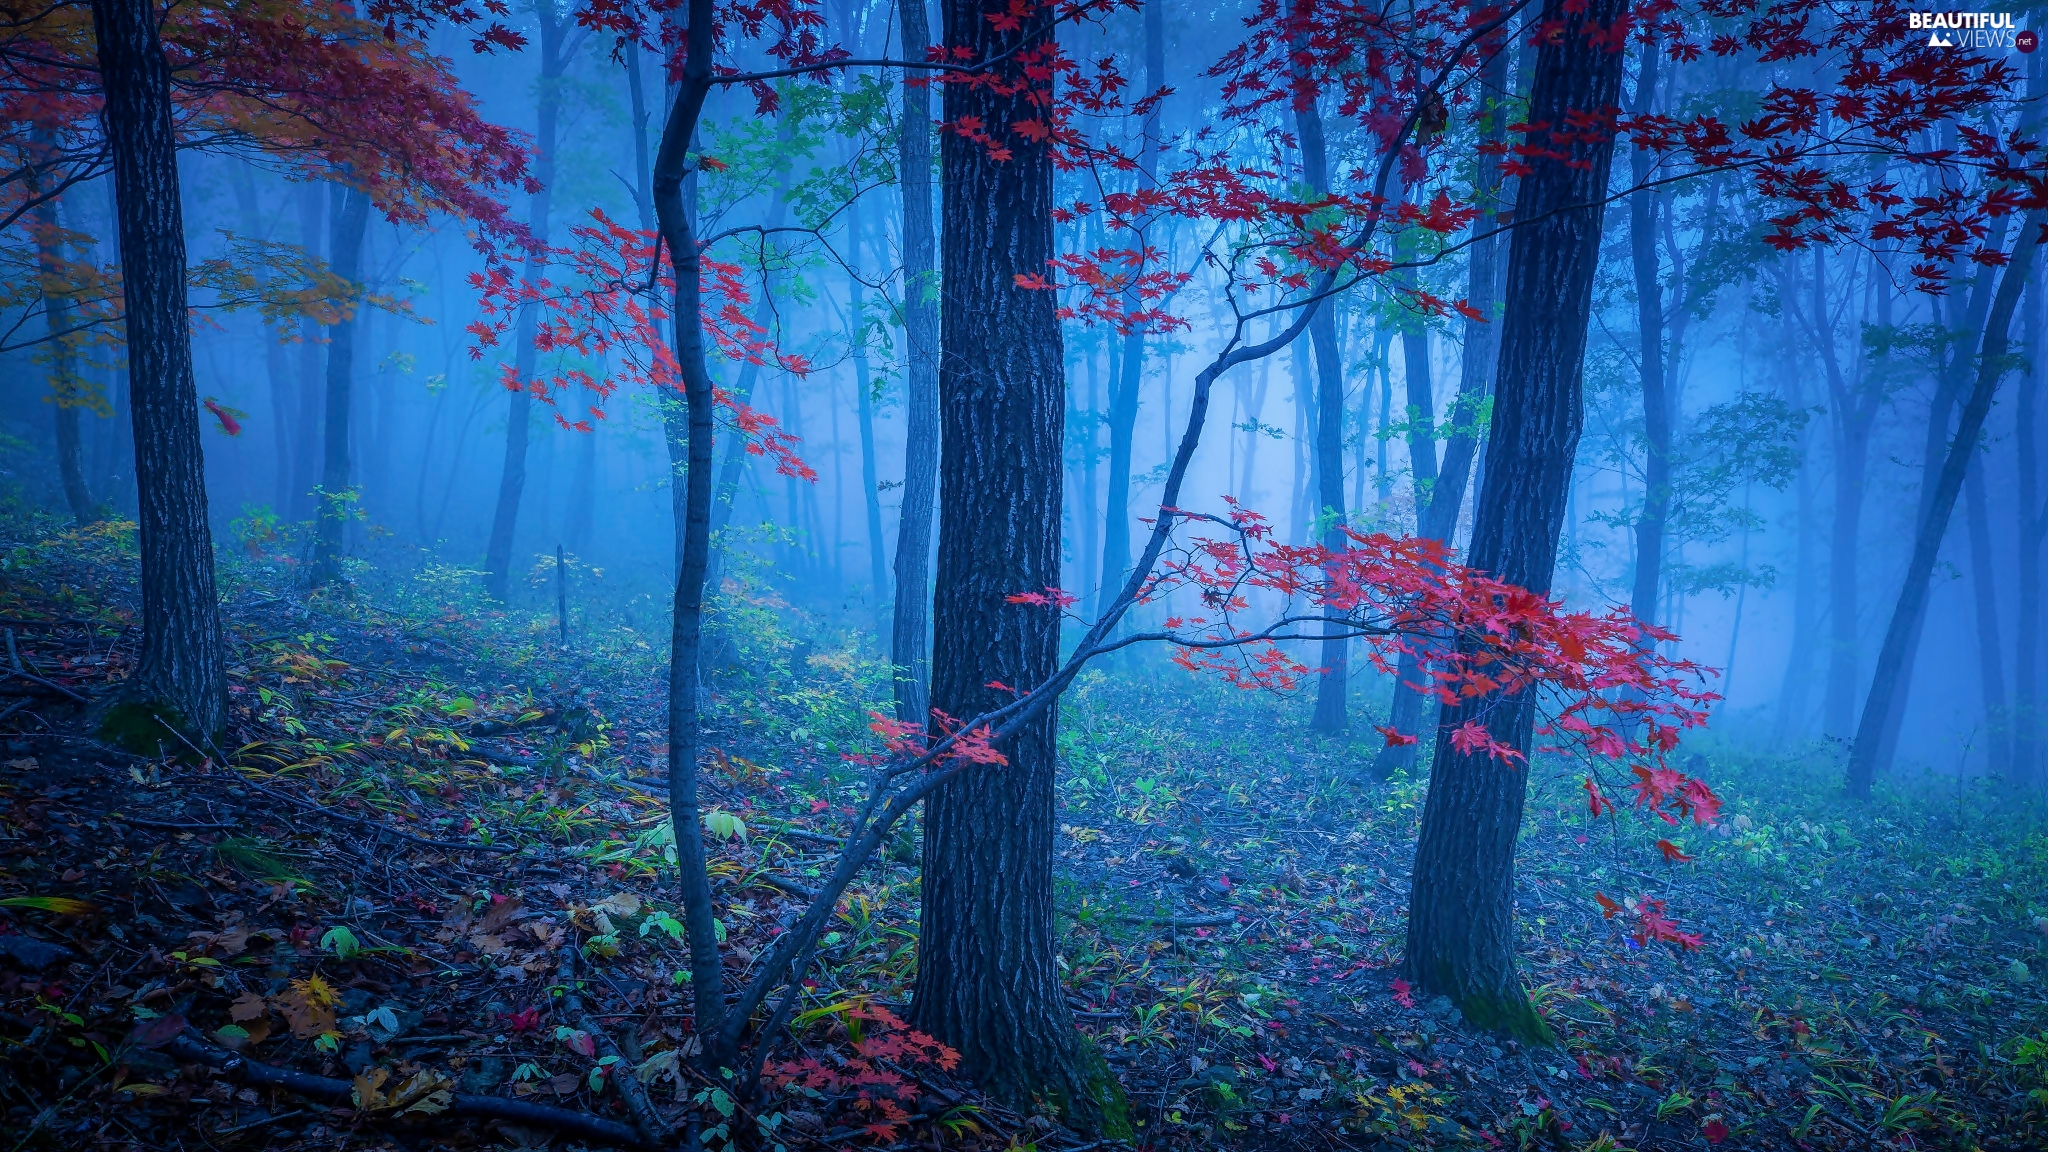 trees, forest, Red, Leaf, viewes, Fog